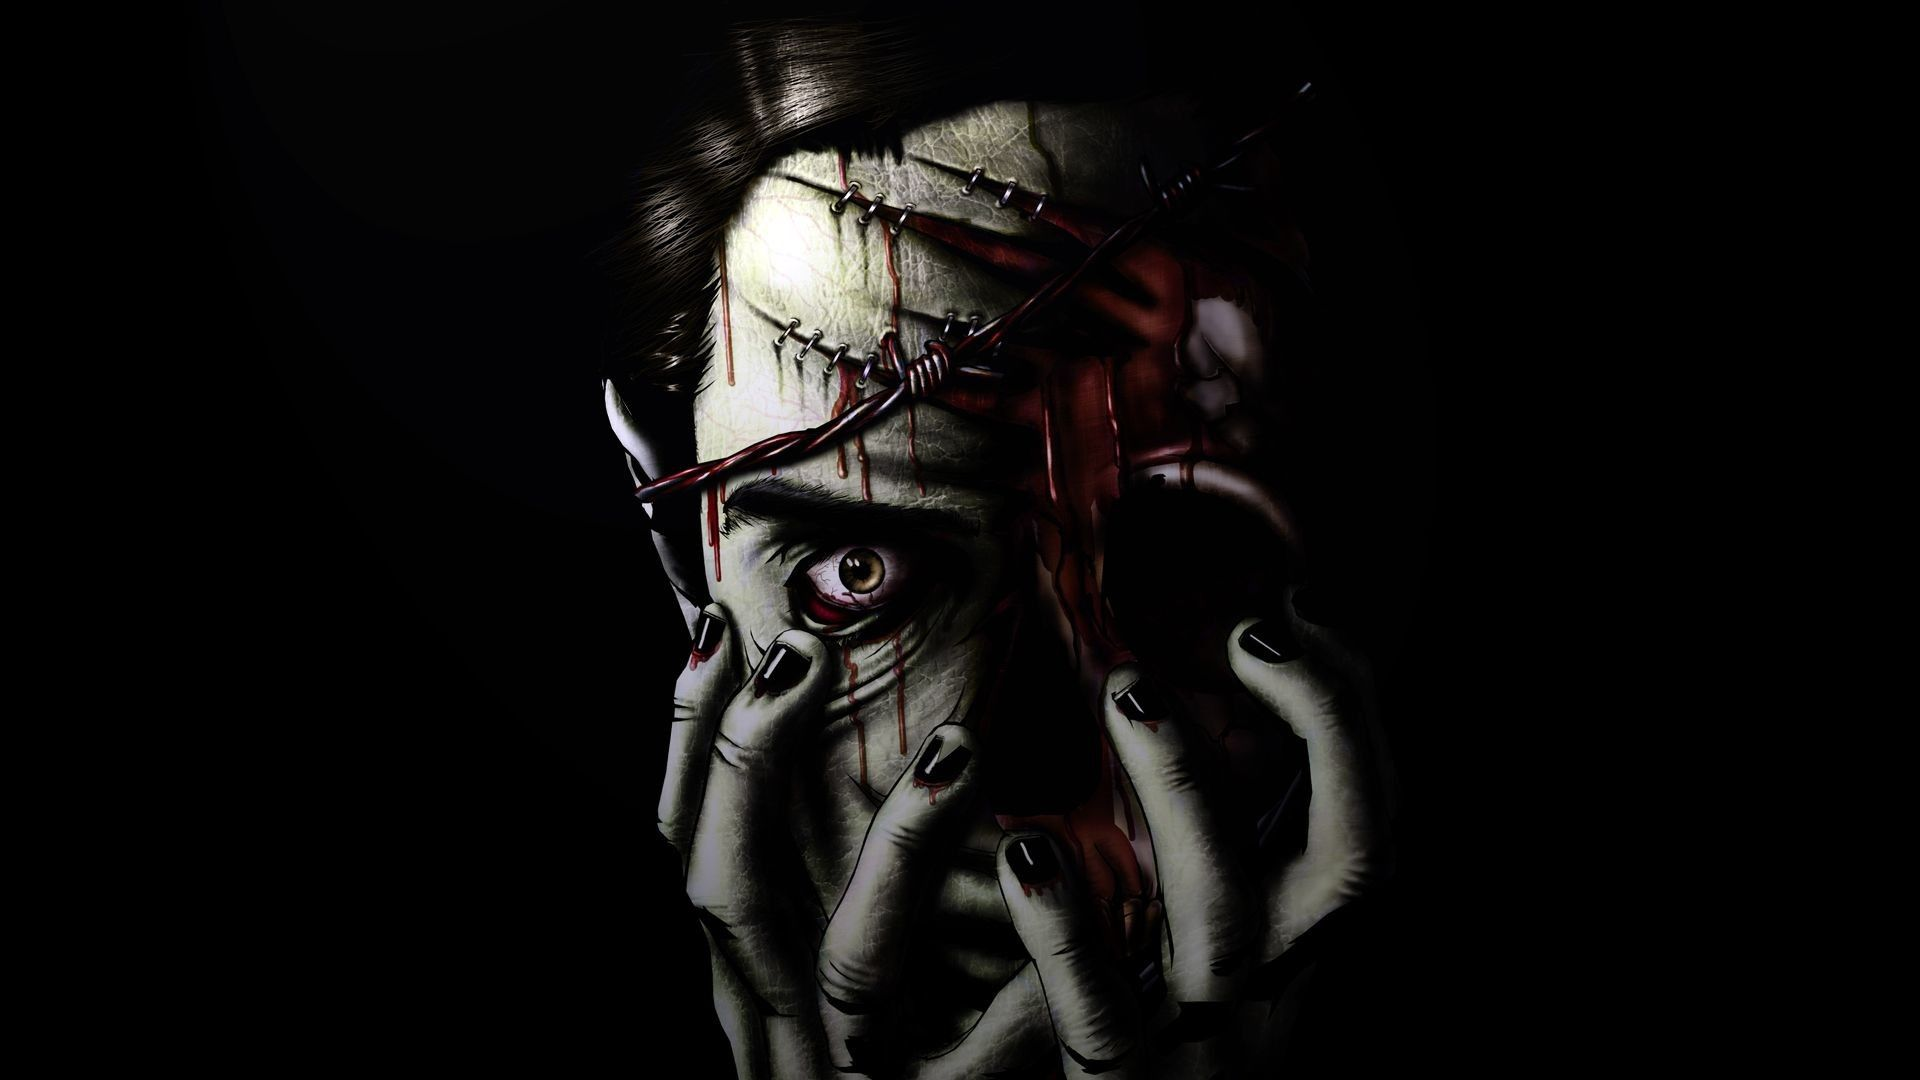 Zombie Creepy Image Zombie Wallpaper Creepy Images Cool Zombie Wallpapers